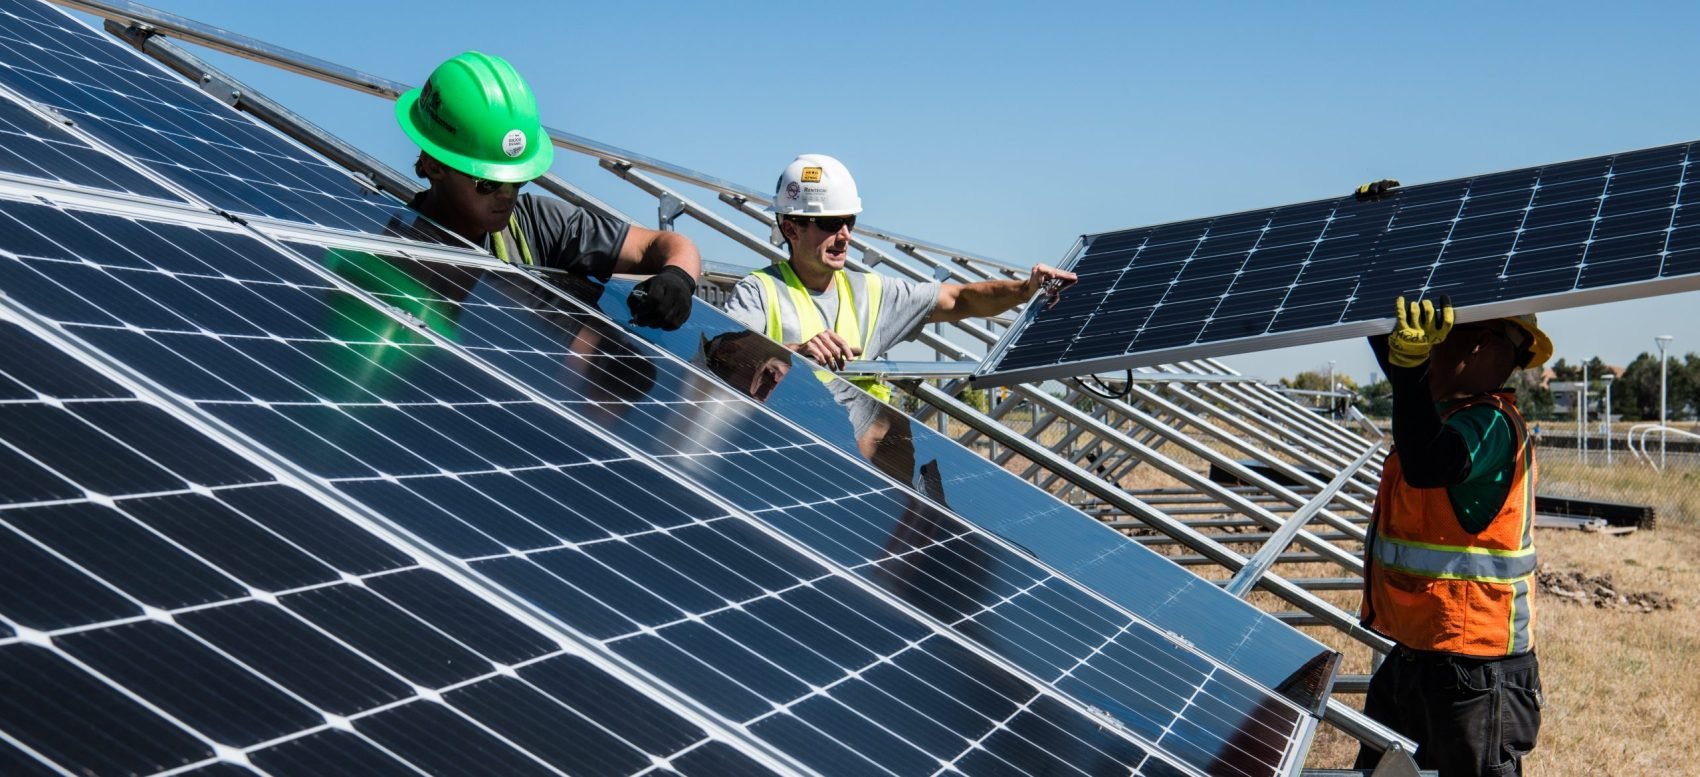 RELEASE: Rocky Mountain Power Proposal Would End Solar in Utah